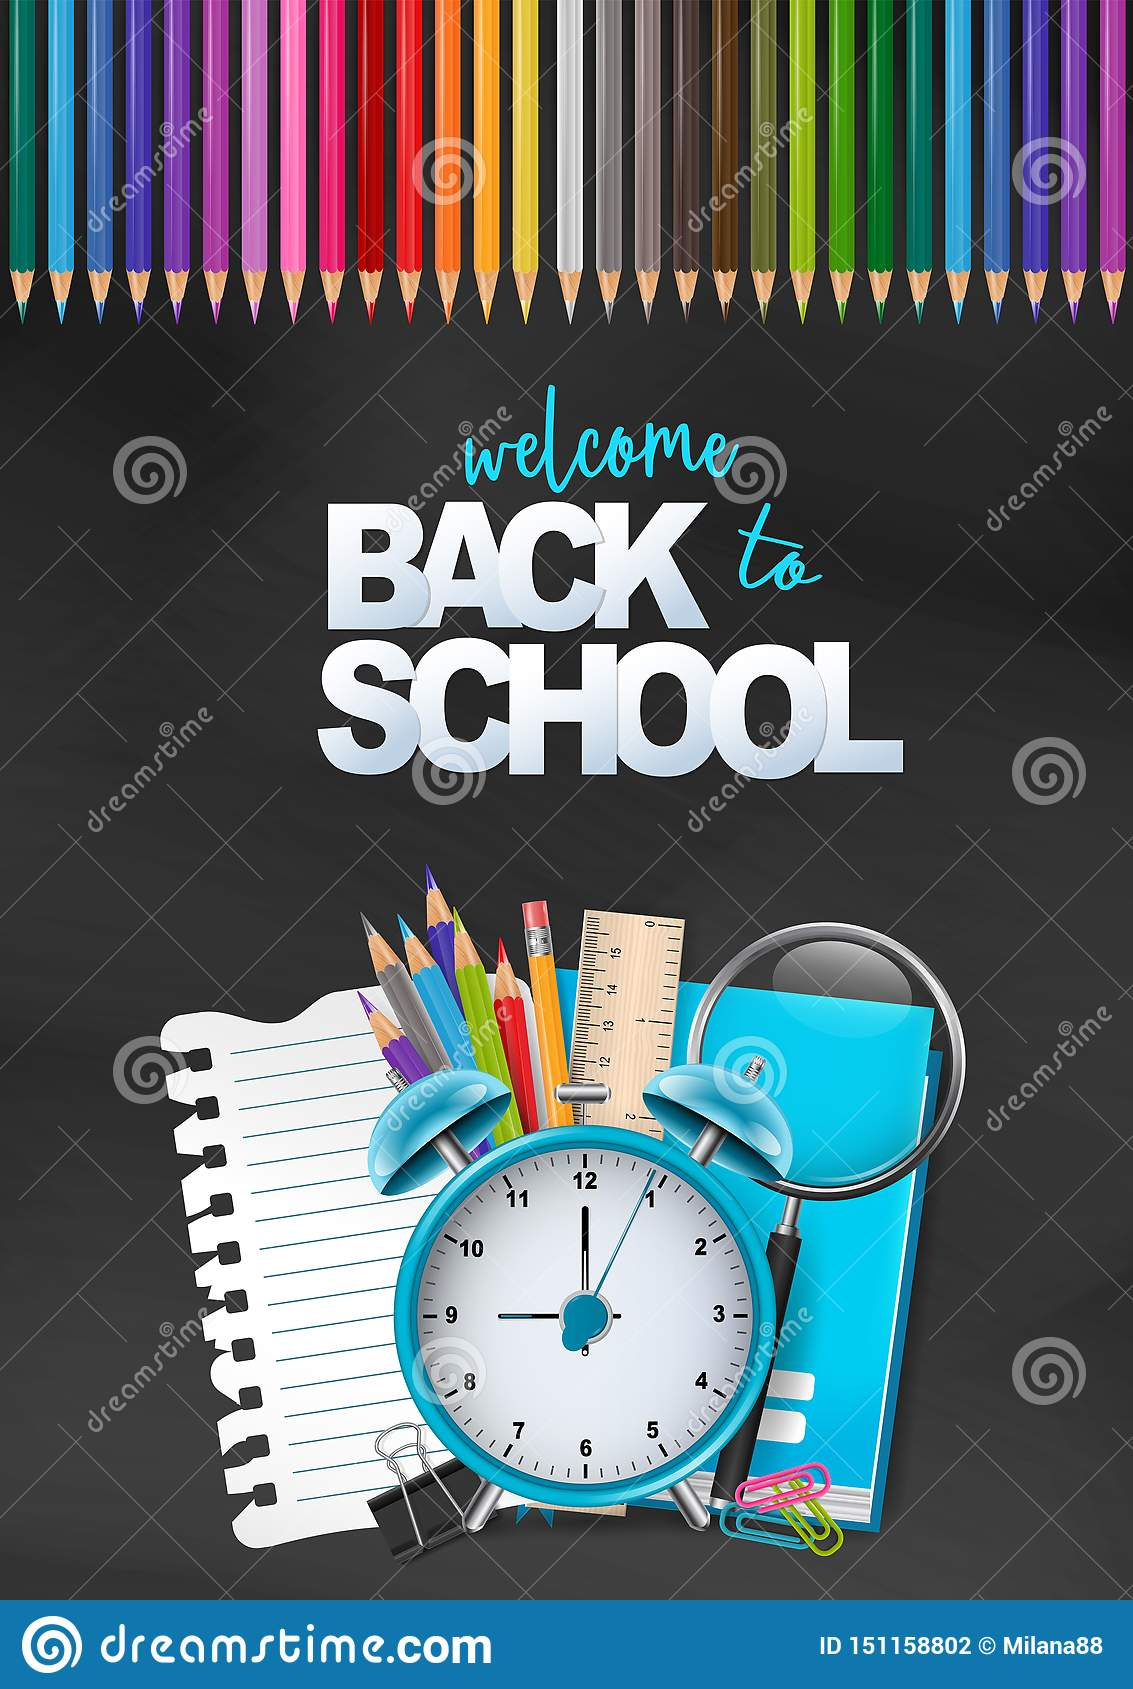 https www dreamstime com welcome back to school colorful poster education flyer advertisement magazine book cover website pile stationery wit image151158802